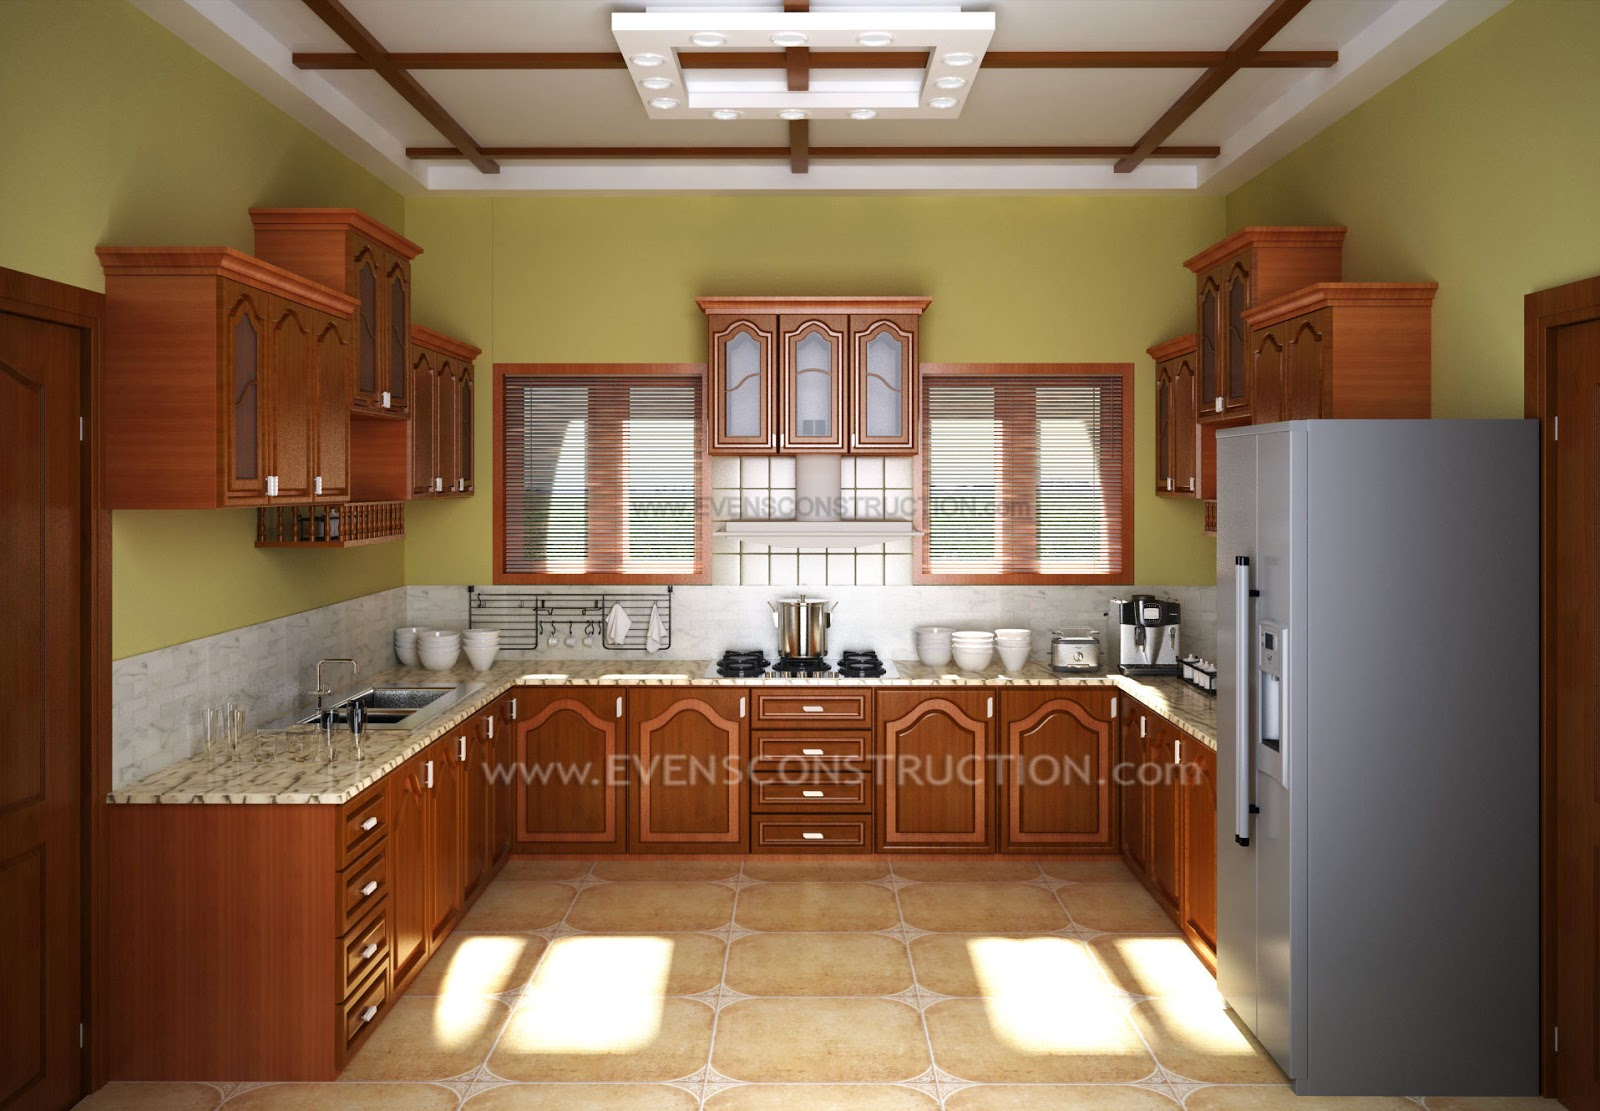 Evens construction pvt ltd kerala kitchen with wooden cabinets - Bathroom cabinets kerala ...